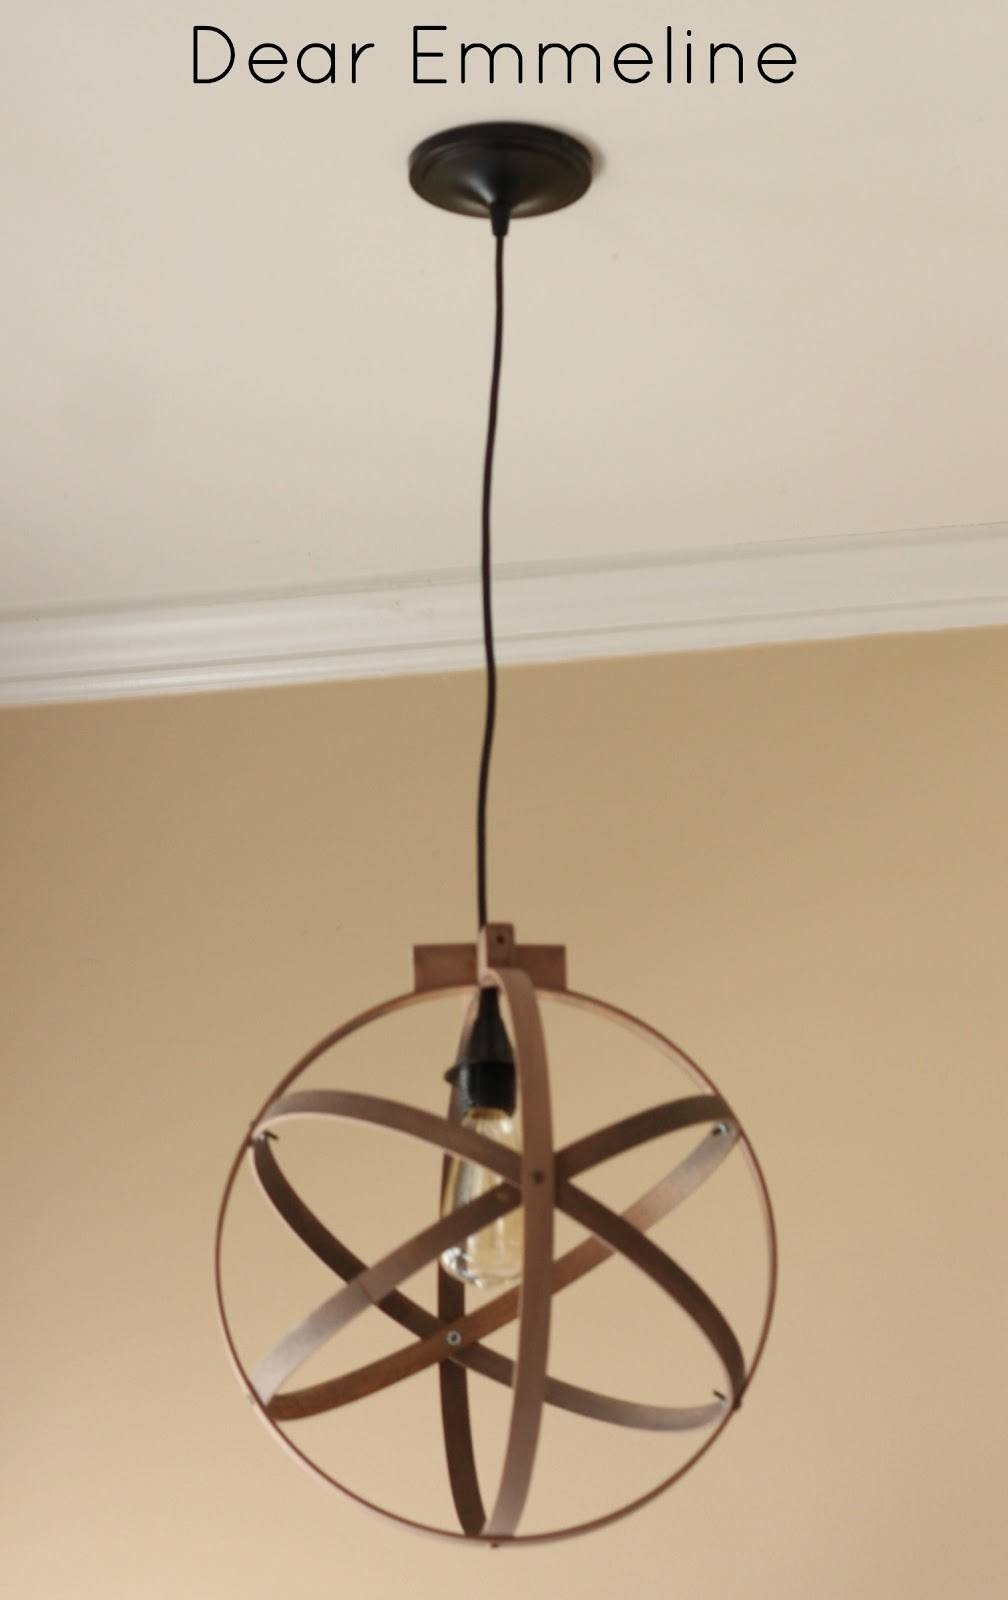 Diy Easy Embroidery Hoop Pendant in Dodecahedron Pendant Lights (Image 7 of 15)